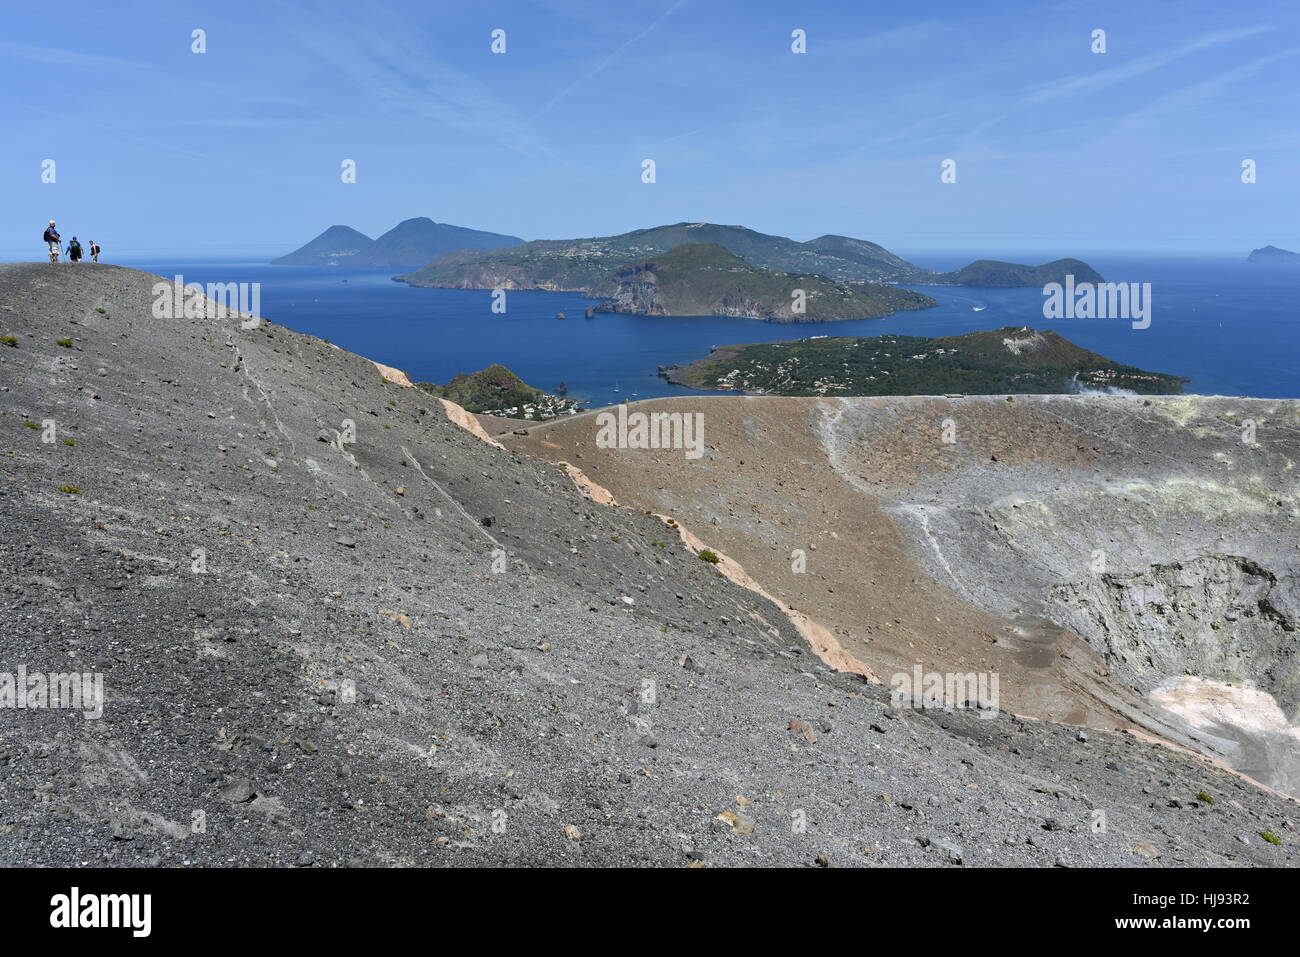 View from the Gran Cratere on Vulcano and several of the other Aeolian Islands, including Lipari, Salina and Panarea - Stock Image